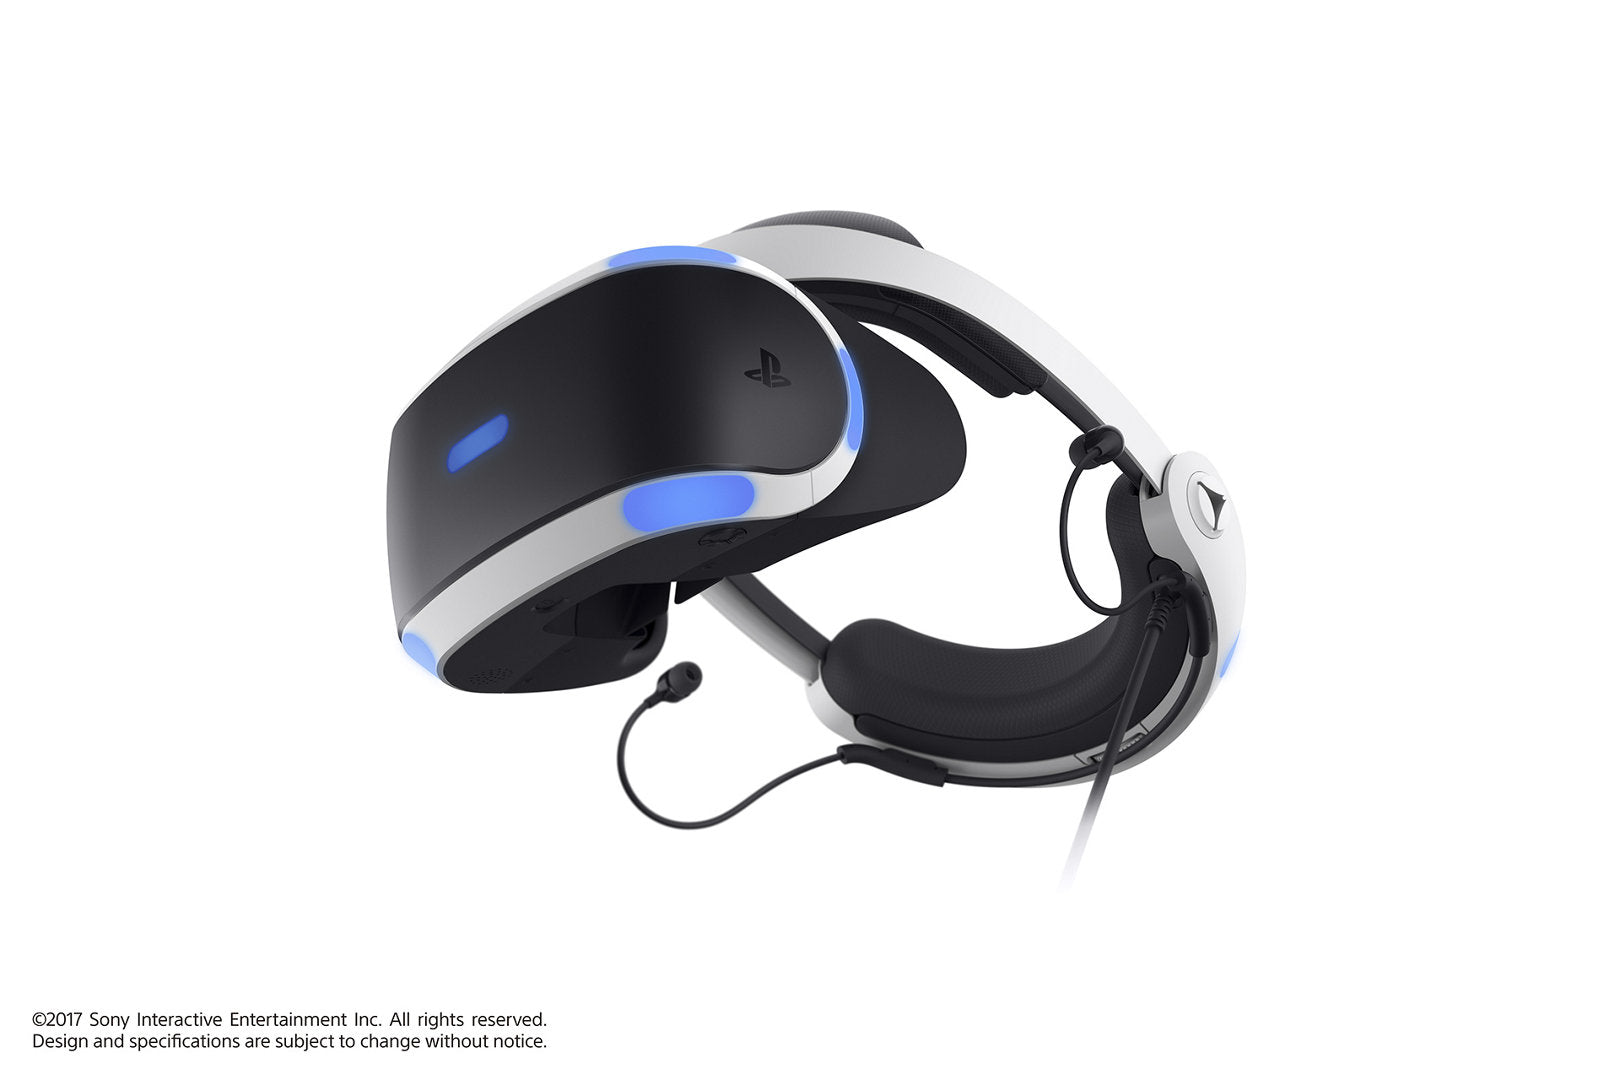 Sony Playstation VR Headset with Camera and Game - tharmart.com